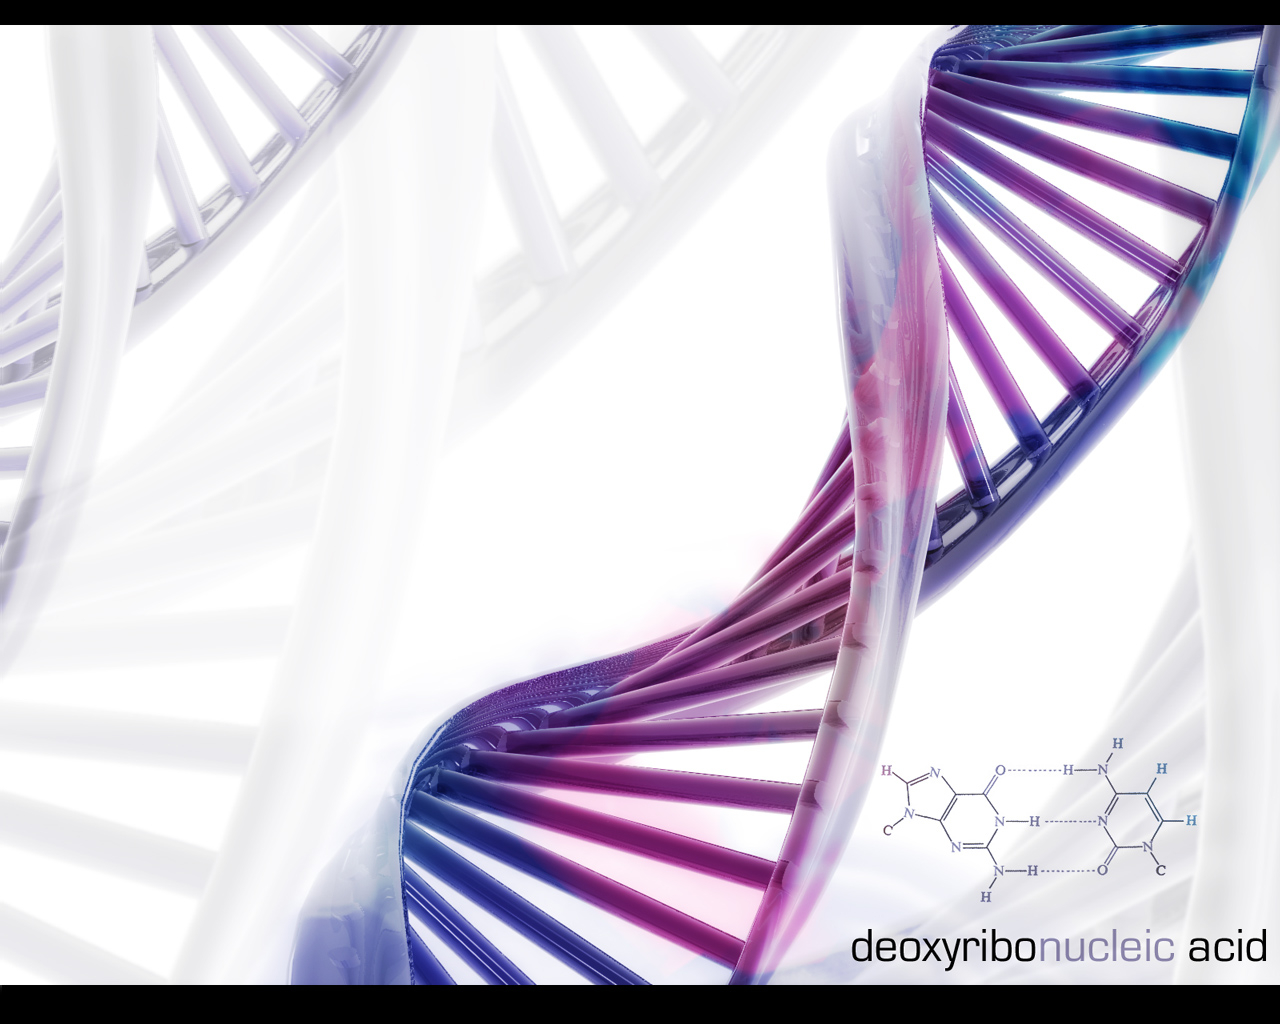 Download Dna Science Wallpaper 1280x1024 Full HD Wallpapers 1280x1024